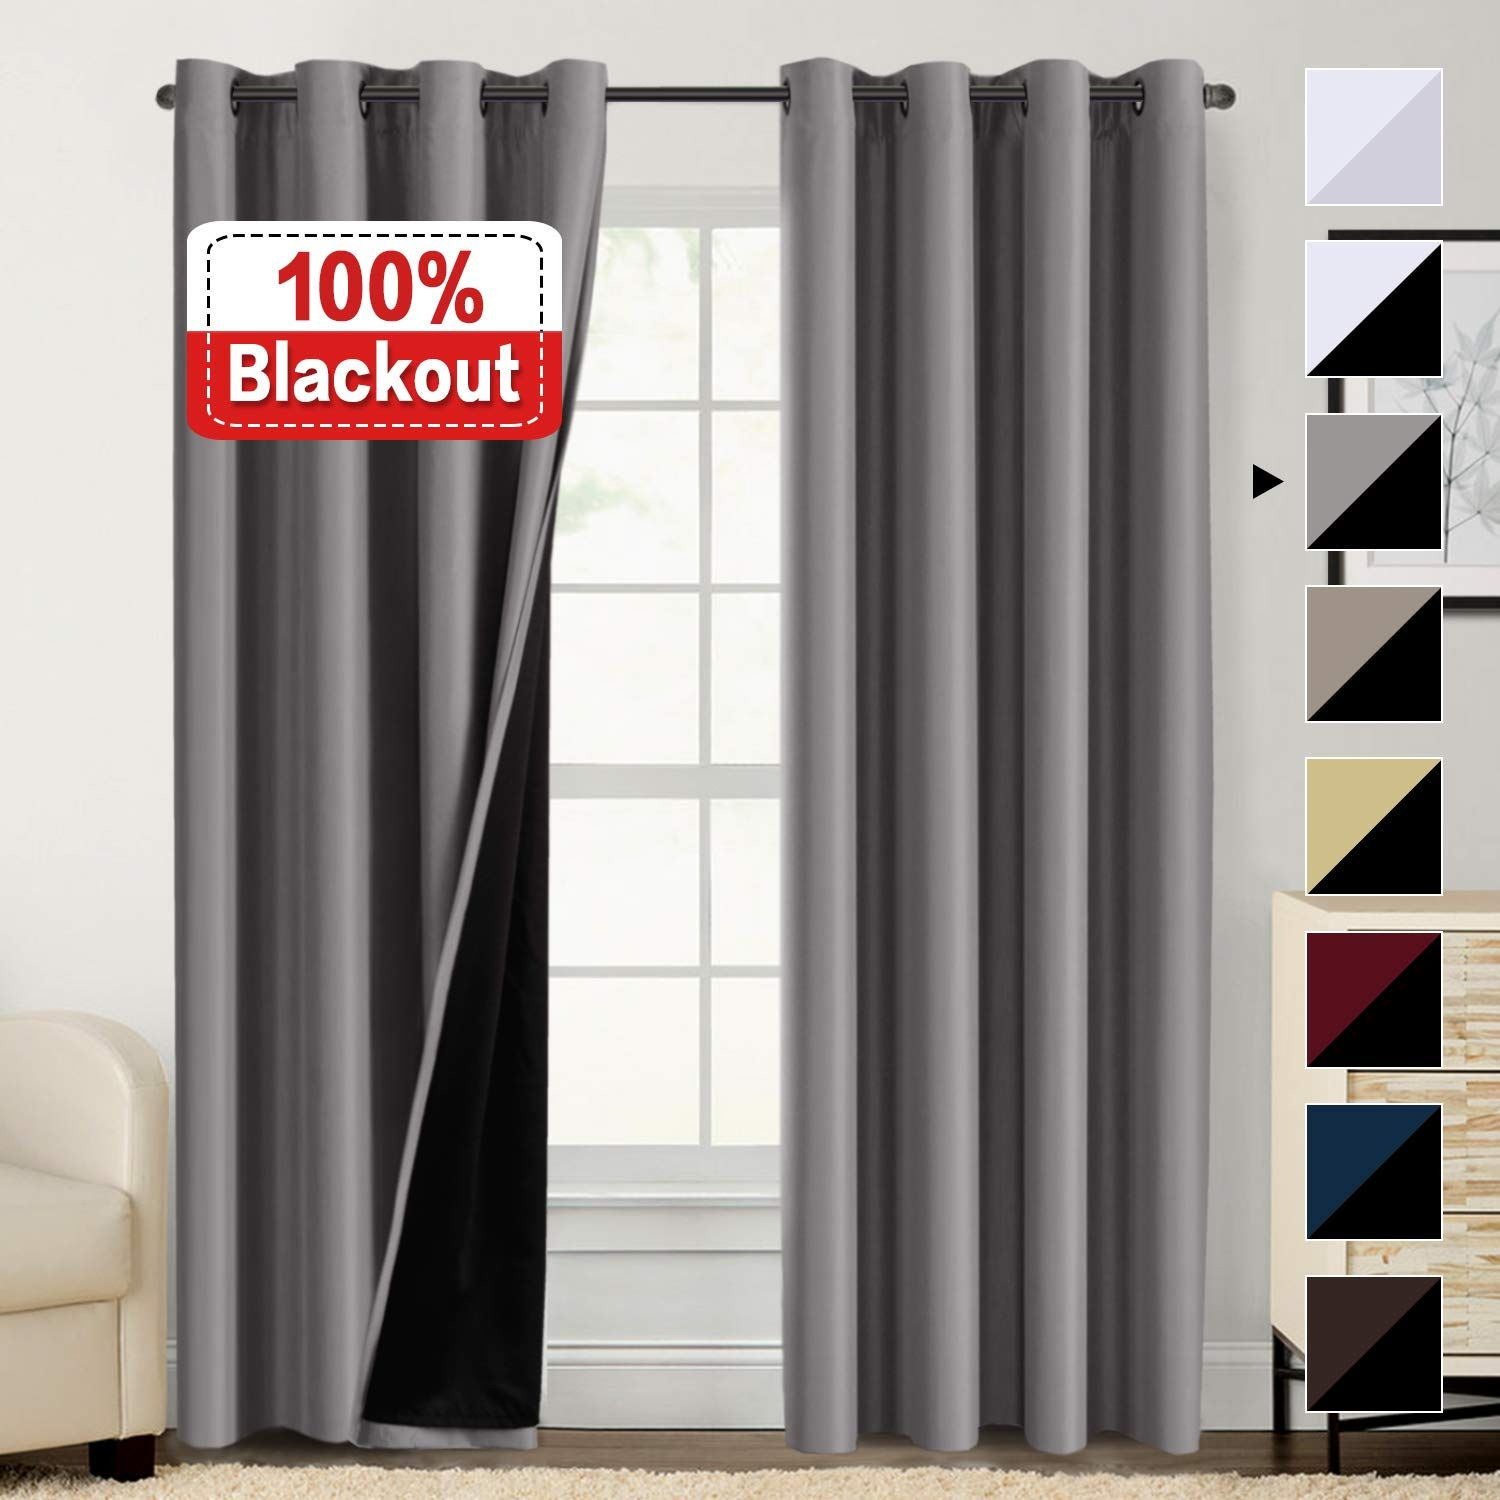 100 Blackout Curtains For Bedroom Energy Saving Pair Curtains For Sliding Glass Doors Thermal Insulated Curtains With Black Liner Double Laye In 2020 Blackout Curtains